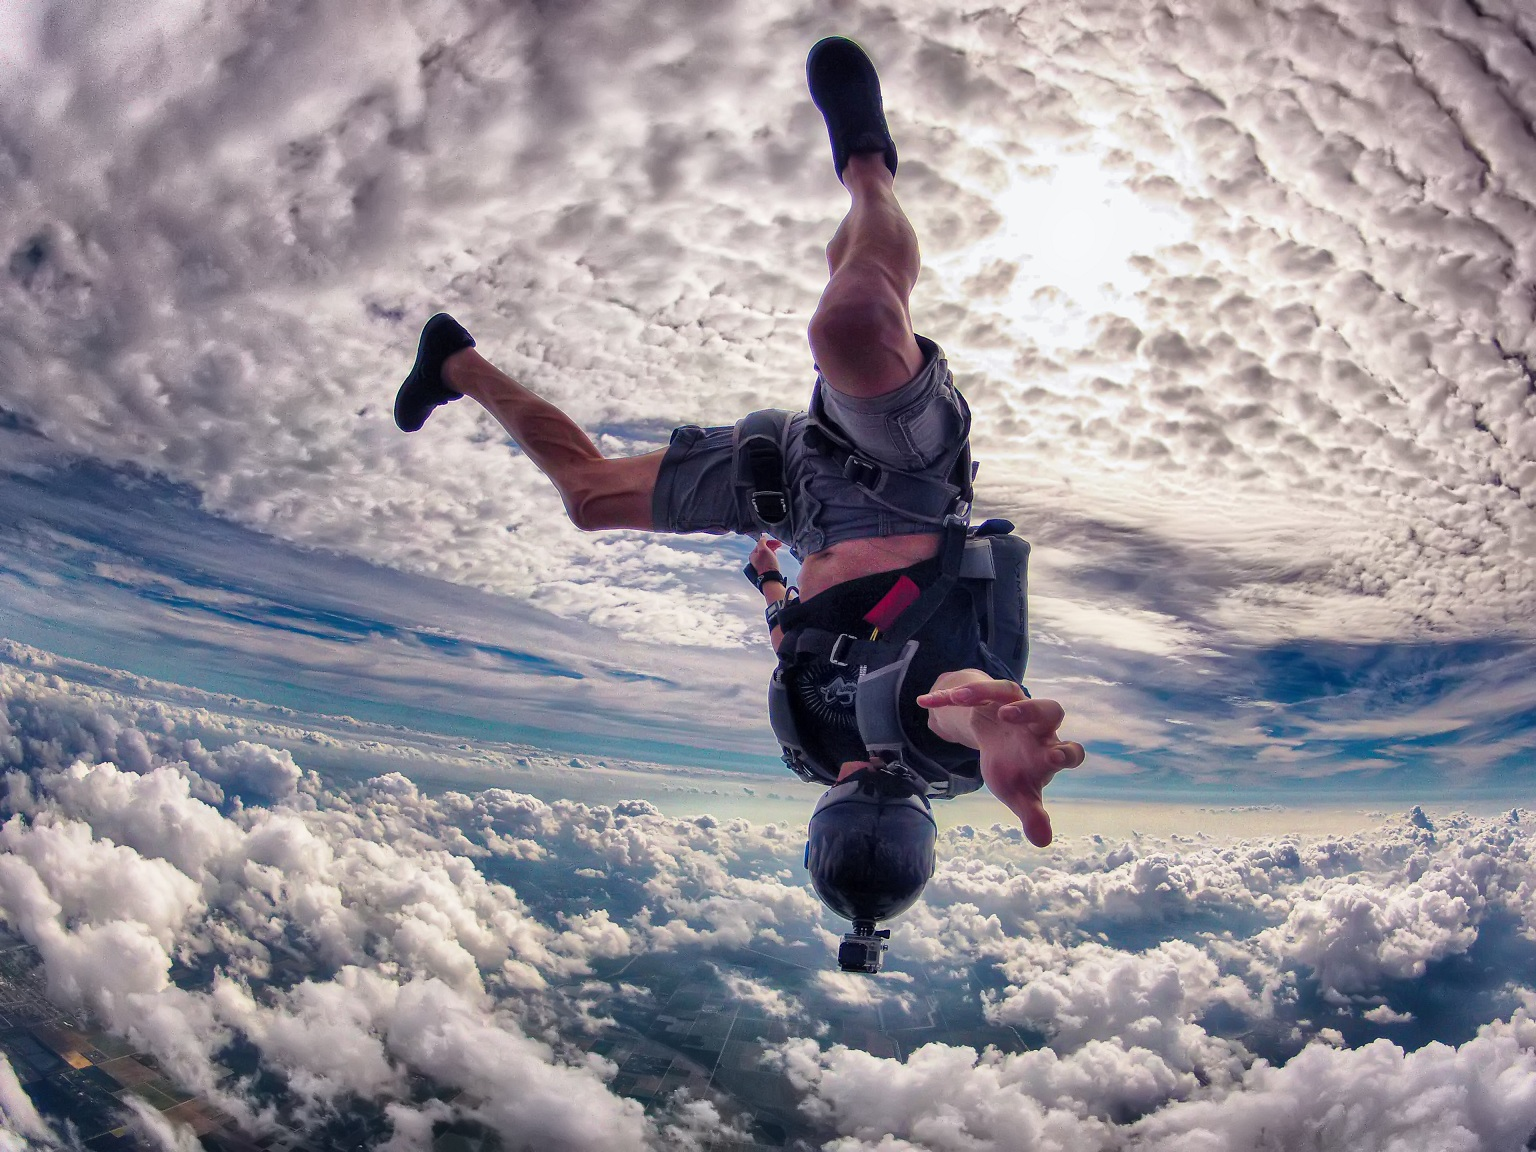 Skydive Free Fall Sports Wallpaper: Skydive Fall Clouds Extreme Sports People Men Males Wind